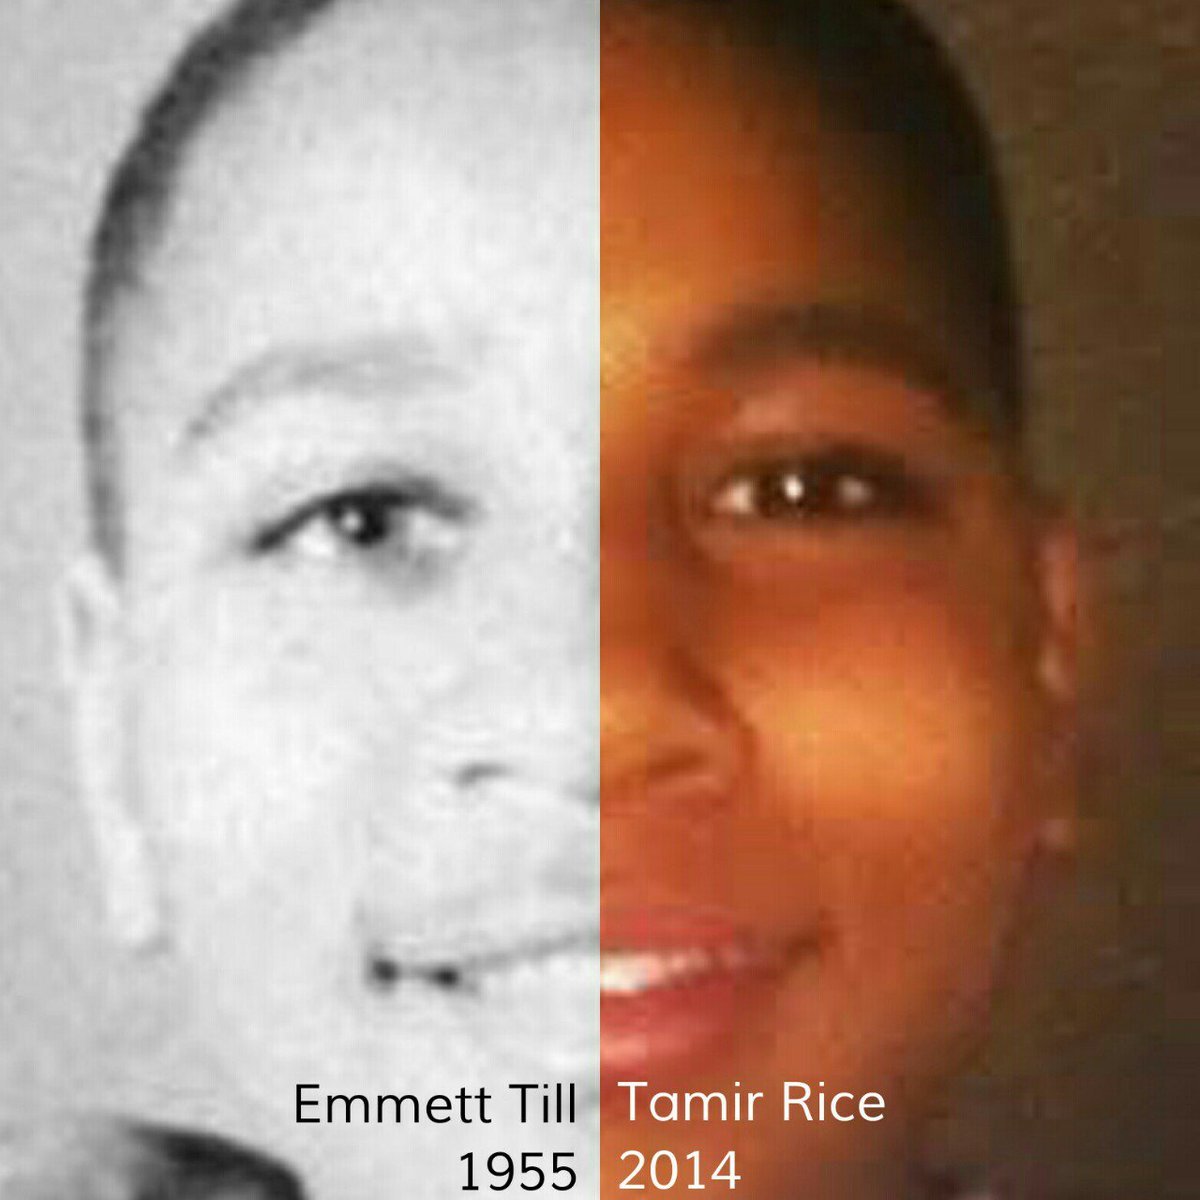 Amazing how history can come back to haunt us ... #EmmettTill #TamirRice https://t.co/mhXpL6iWU9